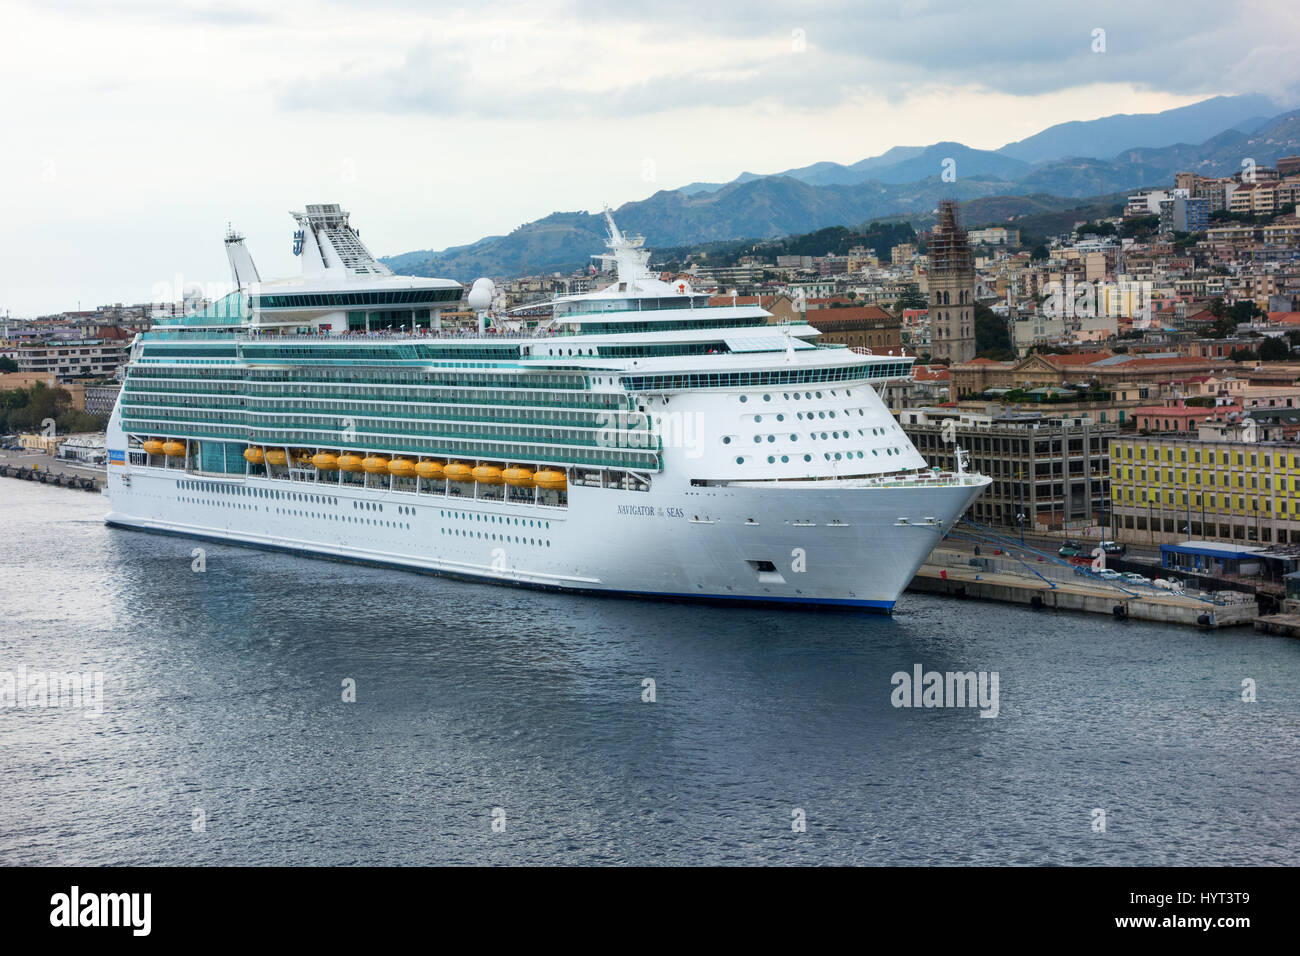 Navigator of the Seas (Royal Caribbean Cruise Lines) cruise ship docked at port and overlooking the town of Messina. - Stock Image